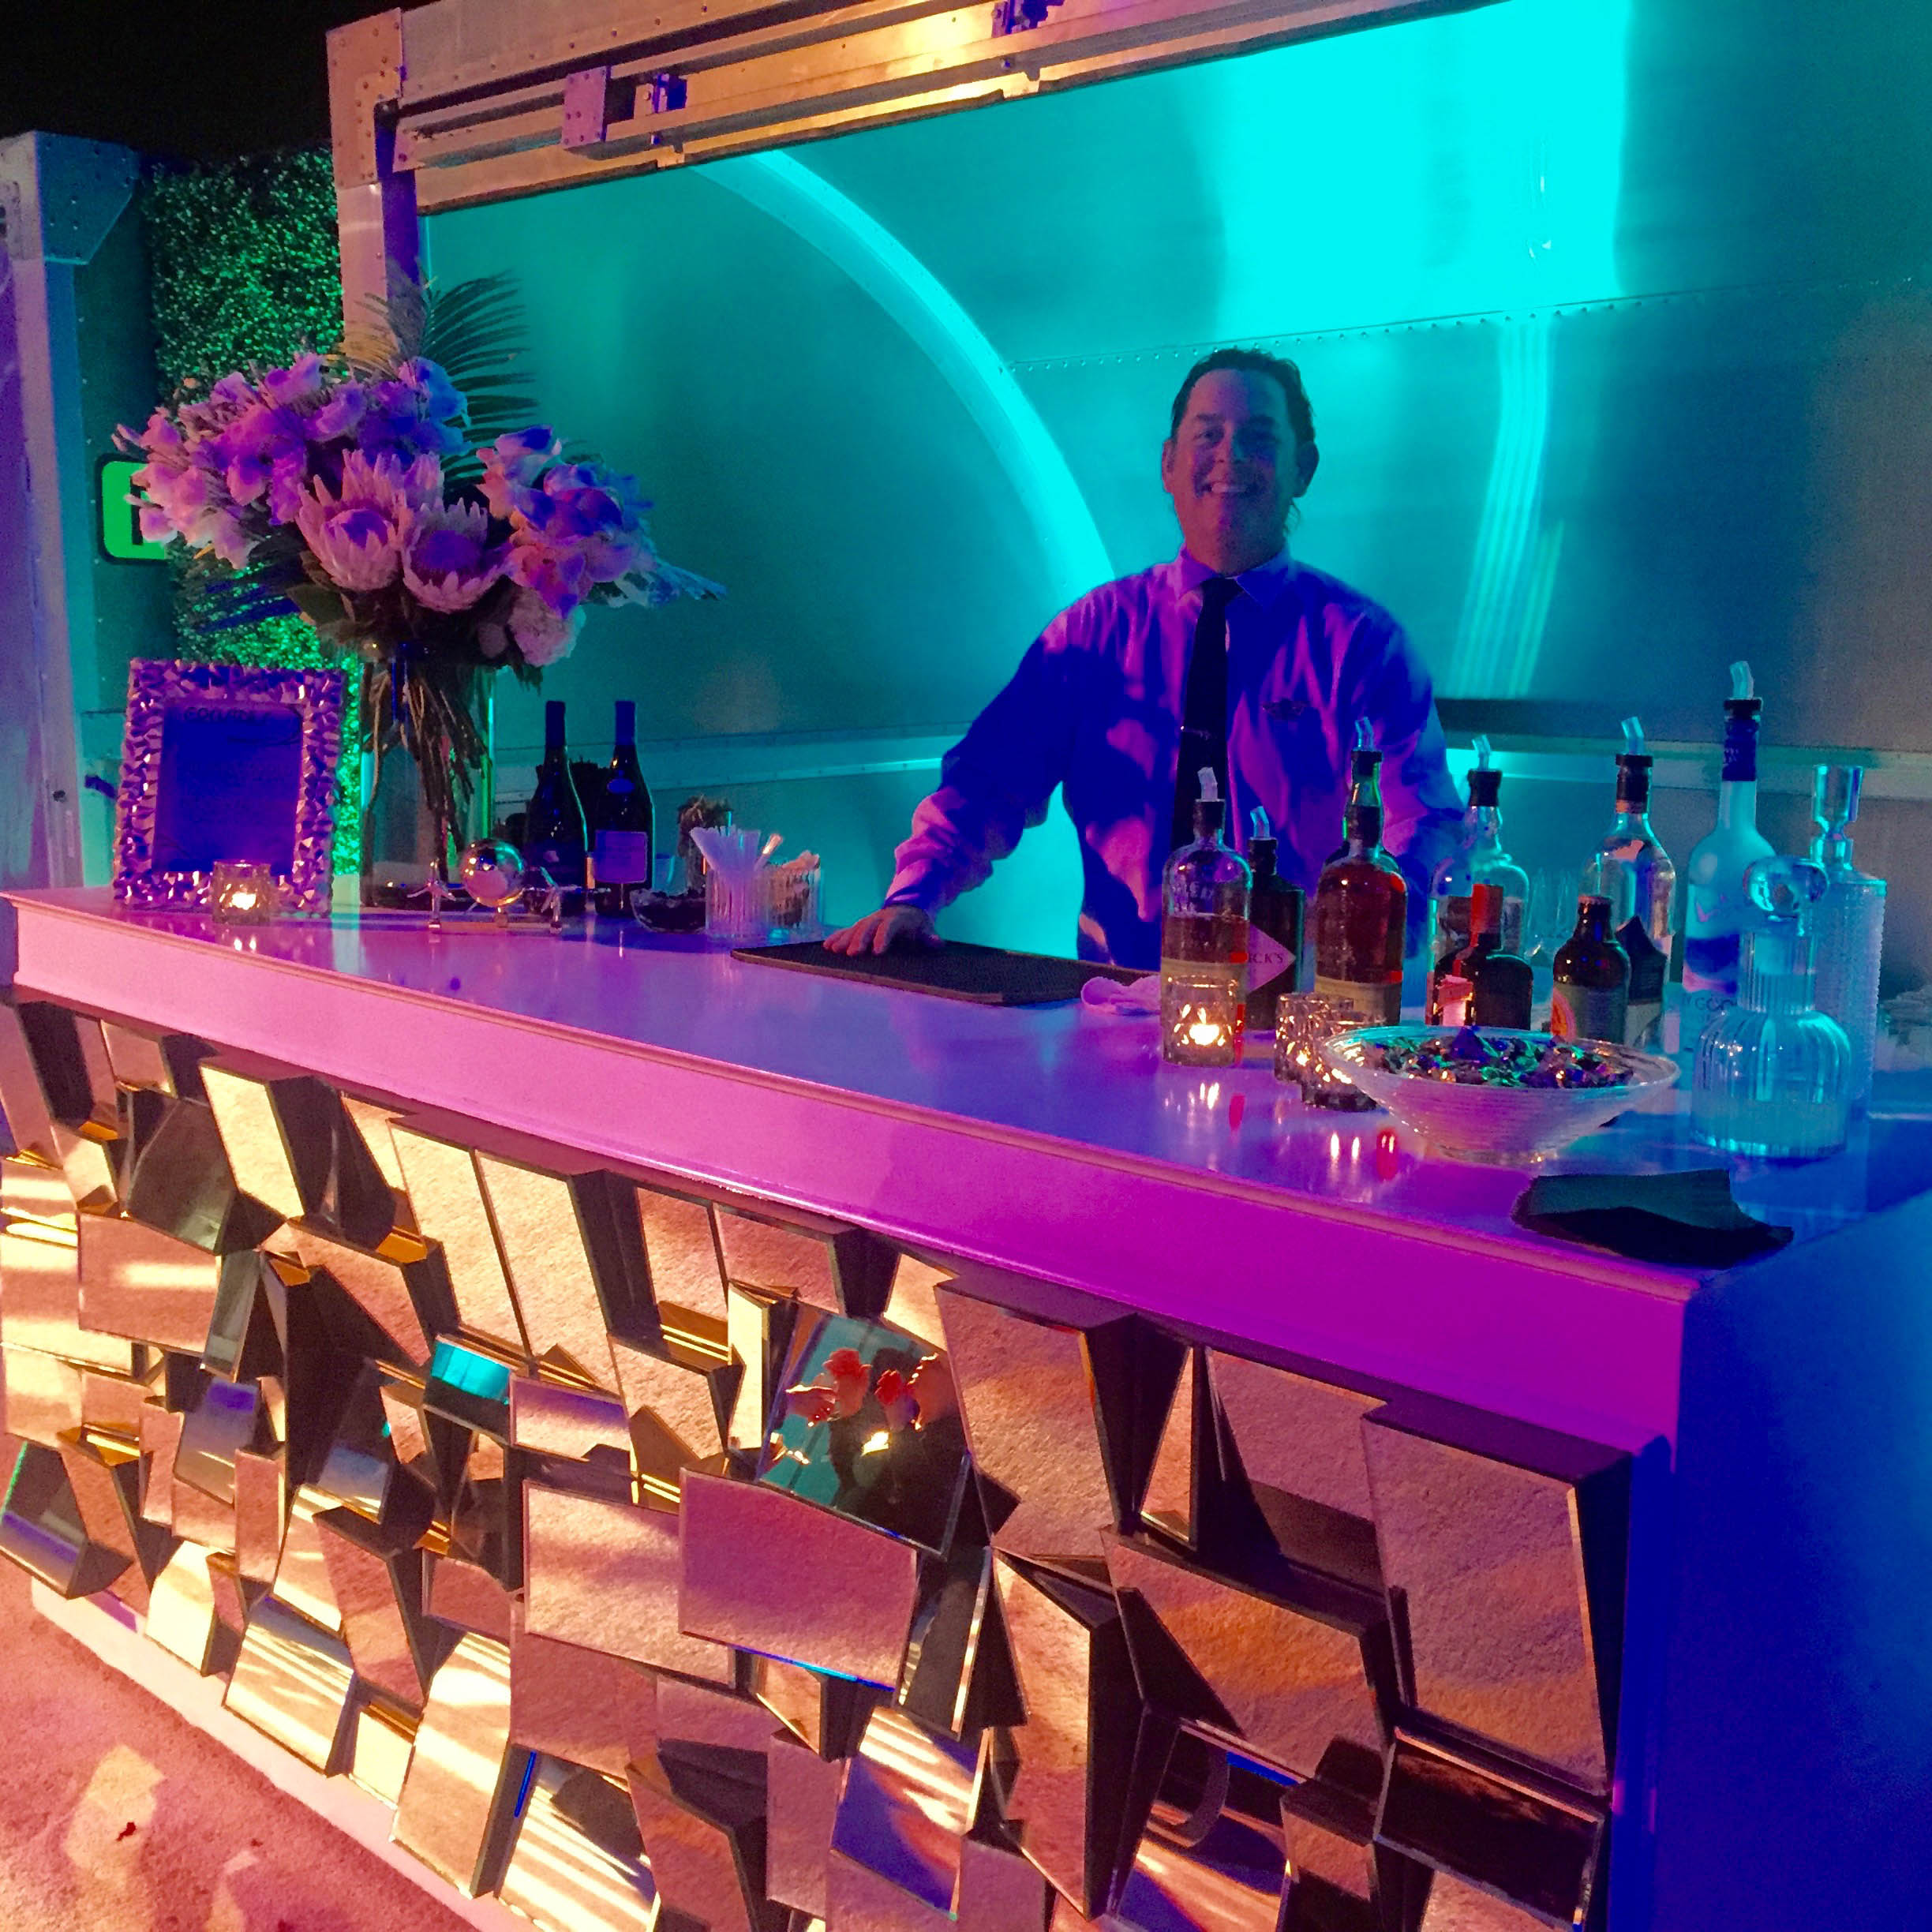 Mirror Bar with Bartender SM.jpg